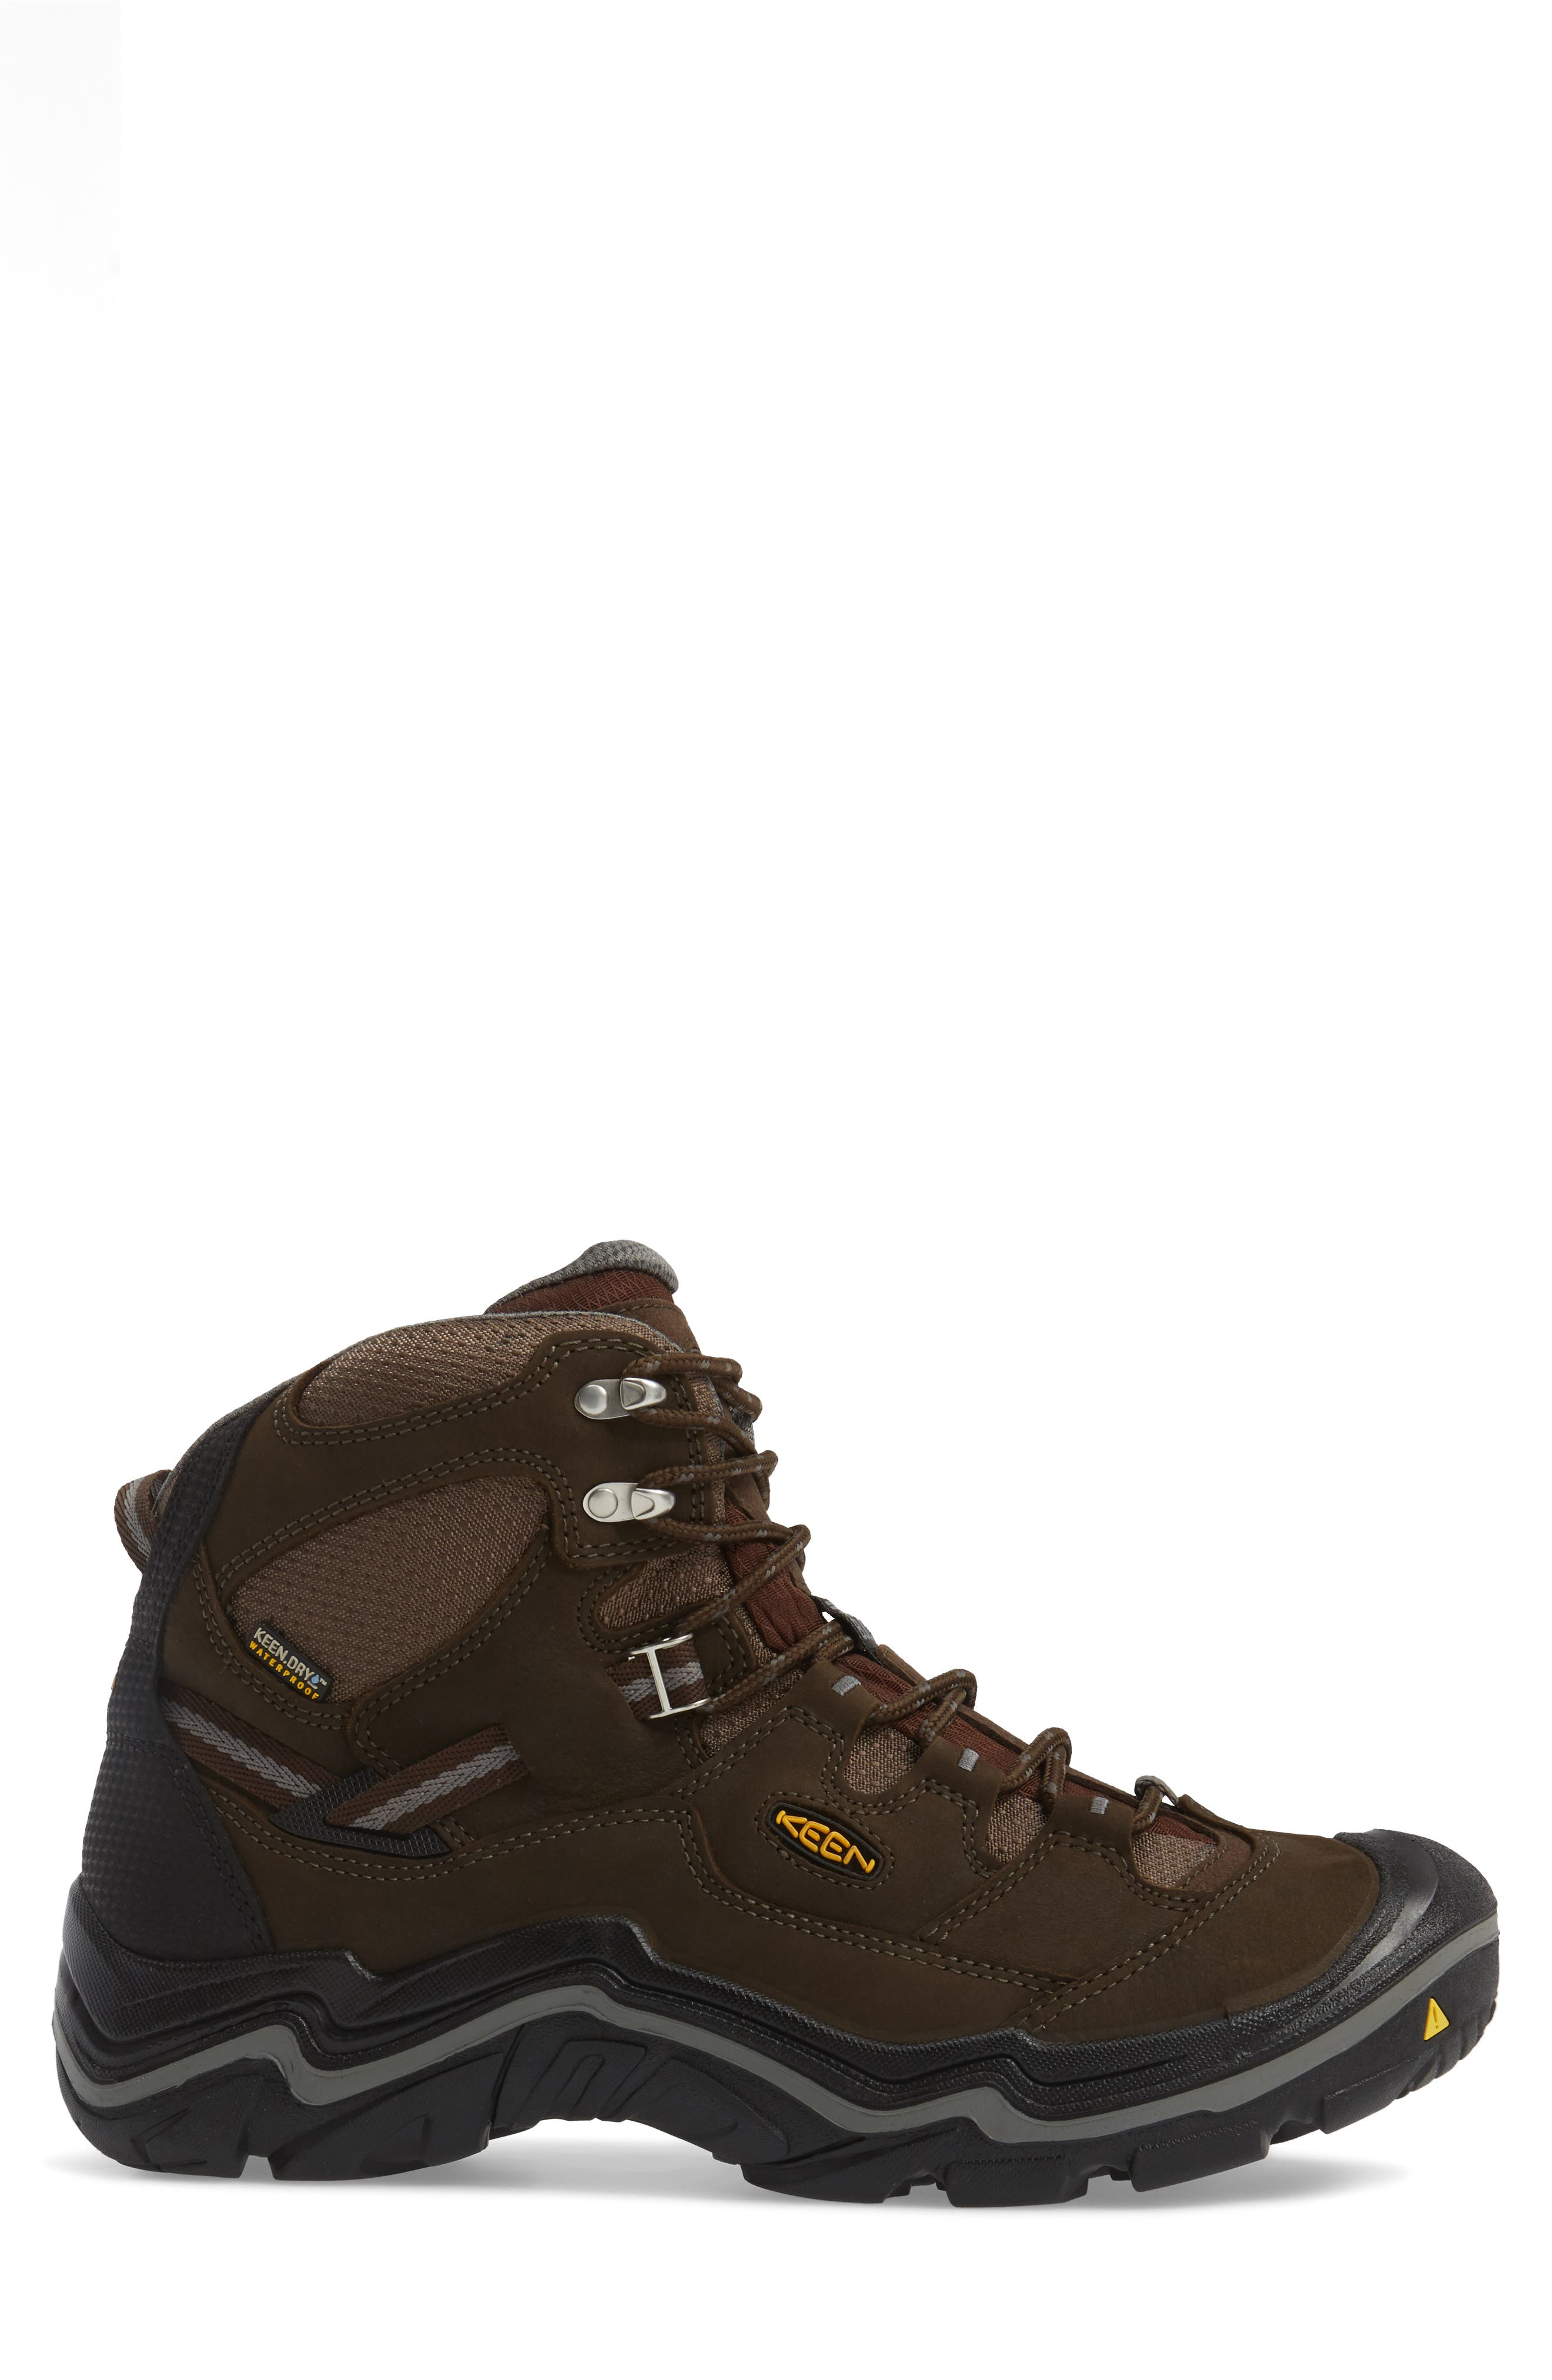 Durand Mid Waterproof Hiking Boot,                             Alternate thumbnail 3, color,                             211